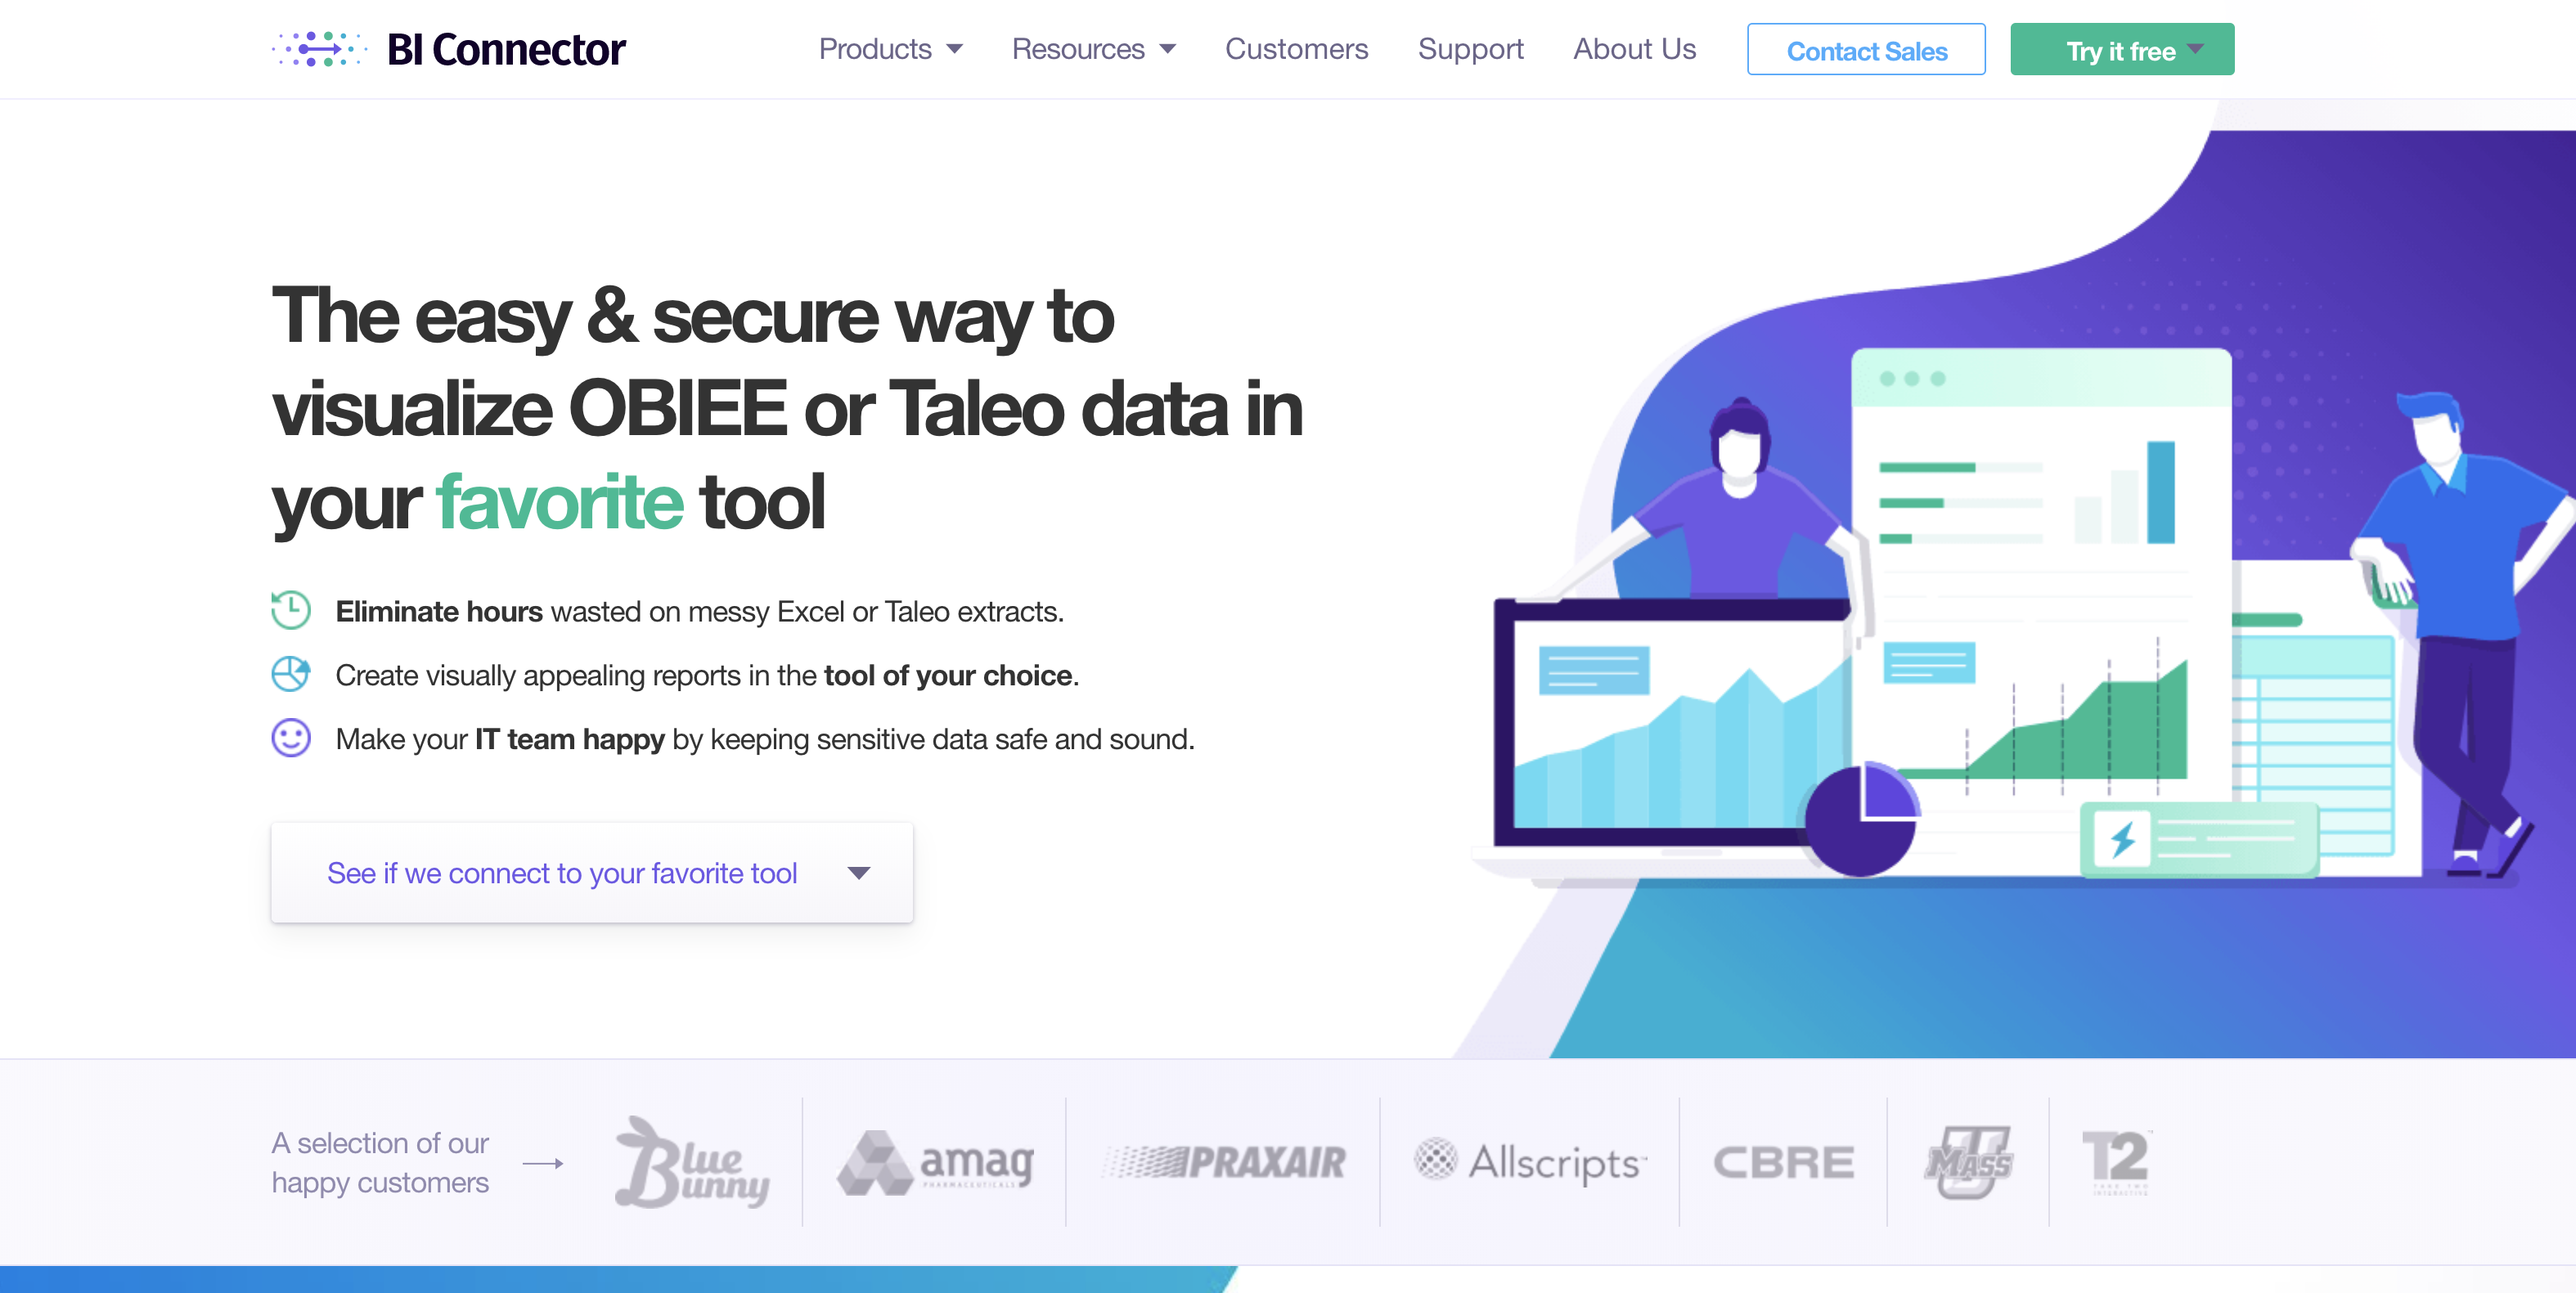 There's an Unbelievably Easy Way to Make Your OBIEE Data